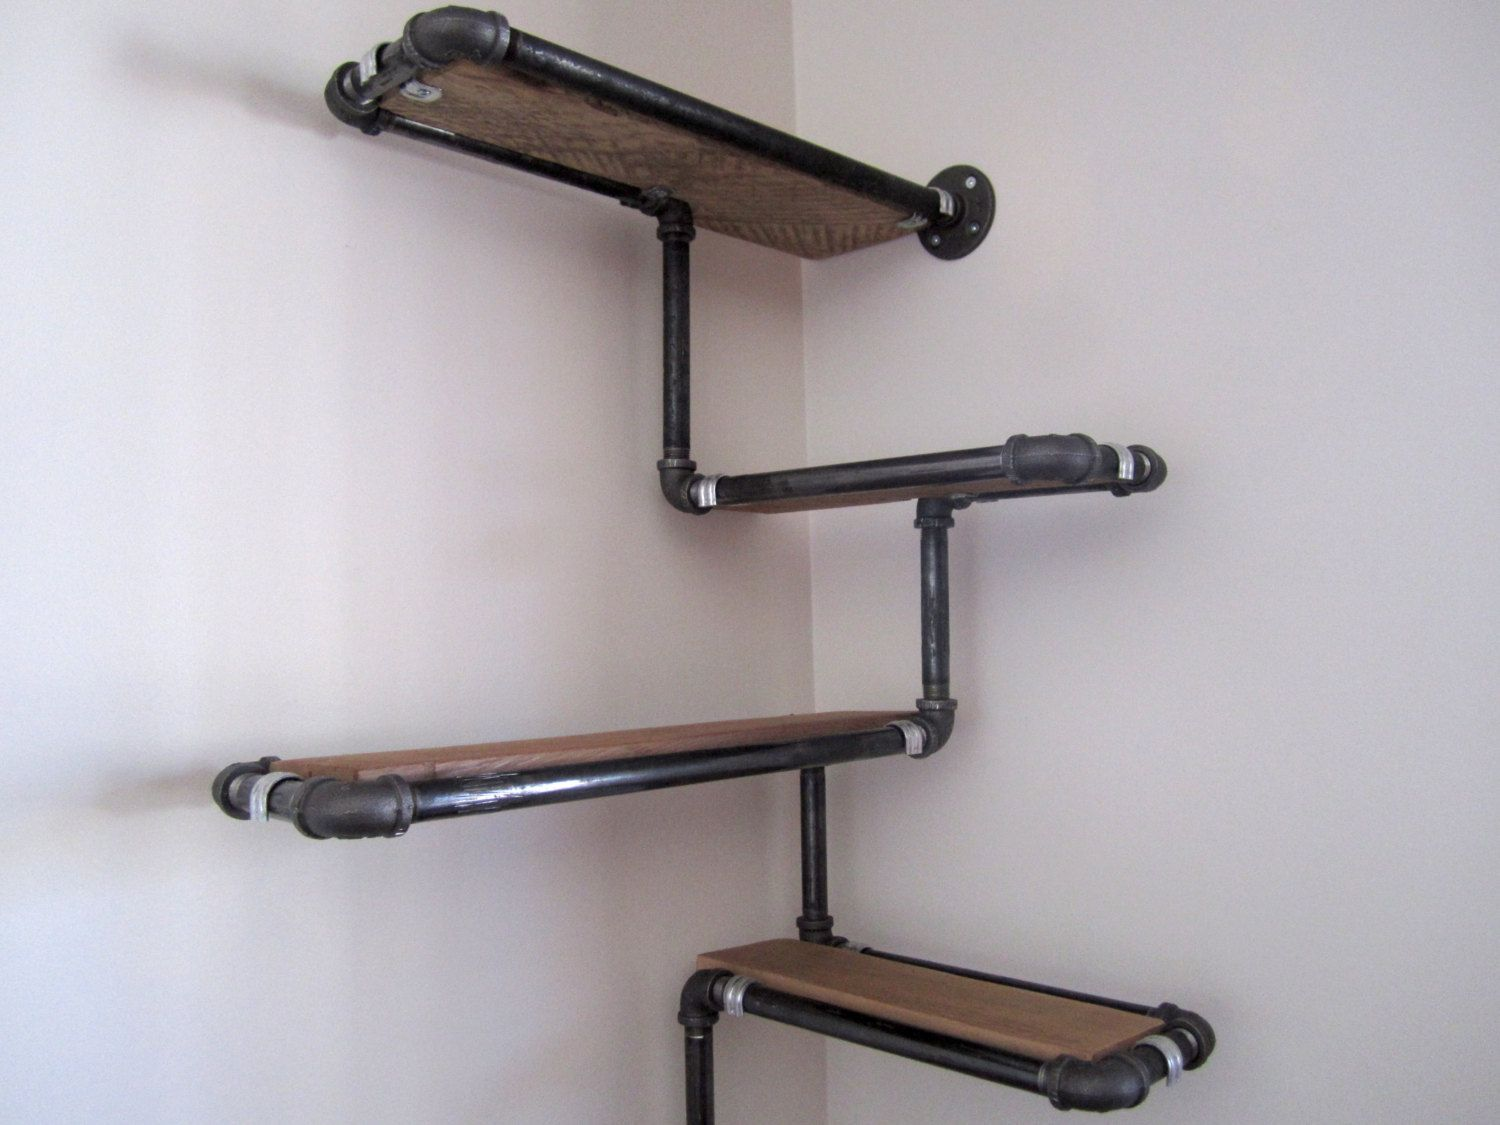 Reclaimed Wood And Metal Wall Shelves: Pipe Wall Shelf With Reclaimed Wood, Custom Pipe Shelves